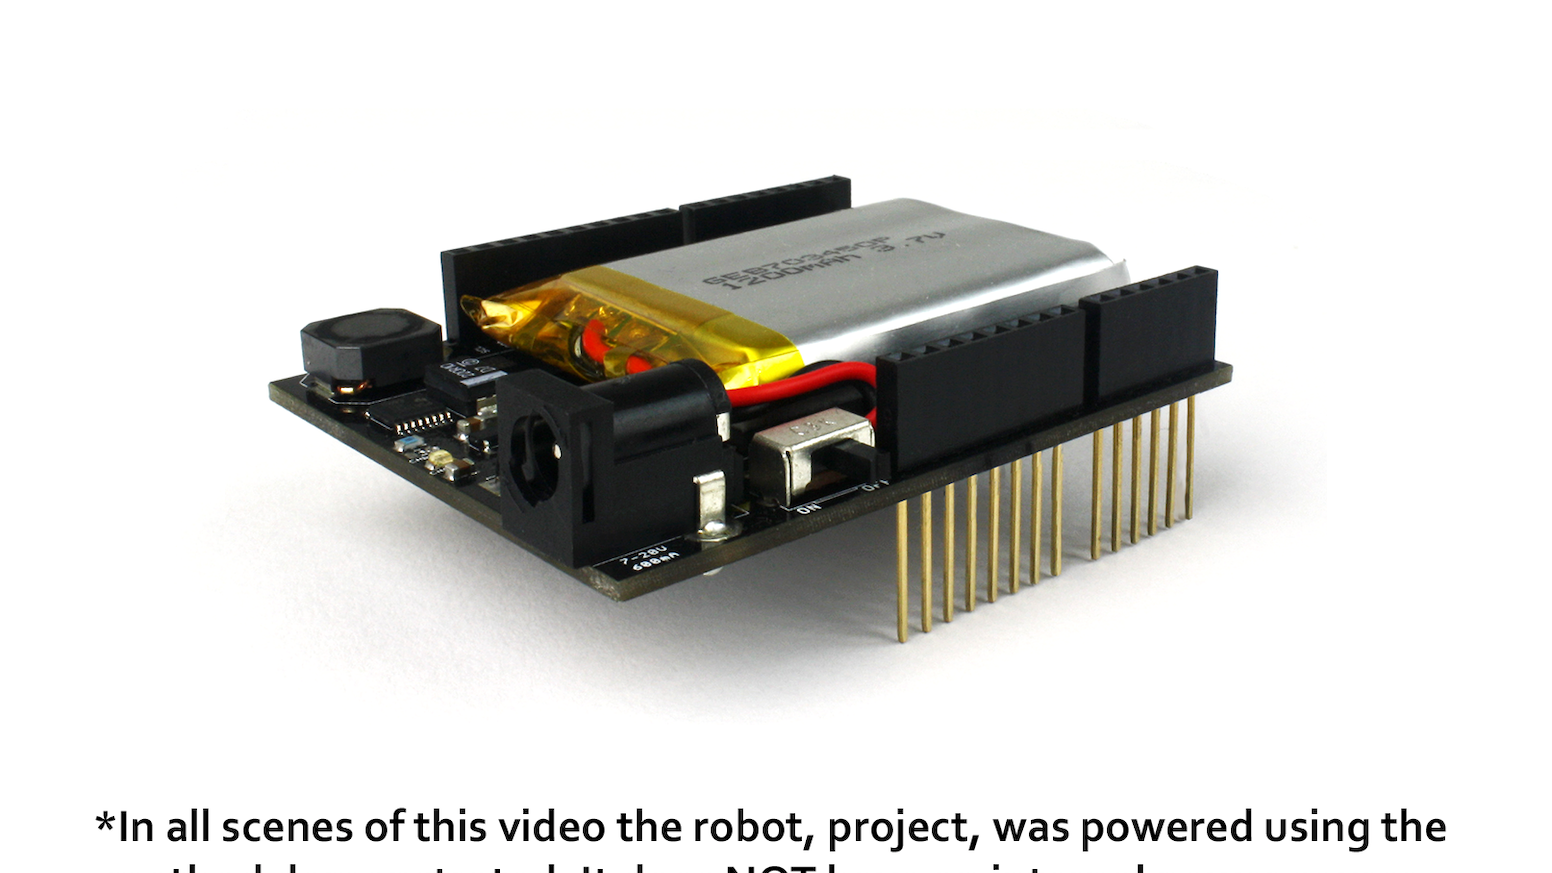 The energyShield is a rechargeable battery for your project, equipped with I2C fuel gauge and solar charging.